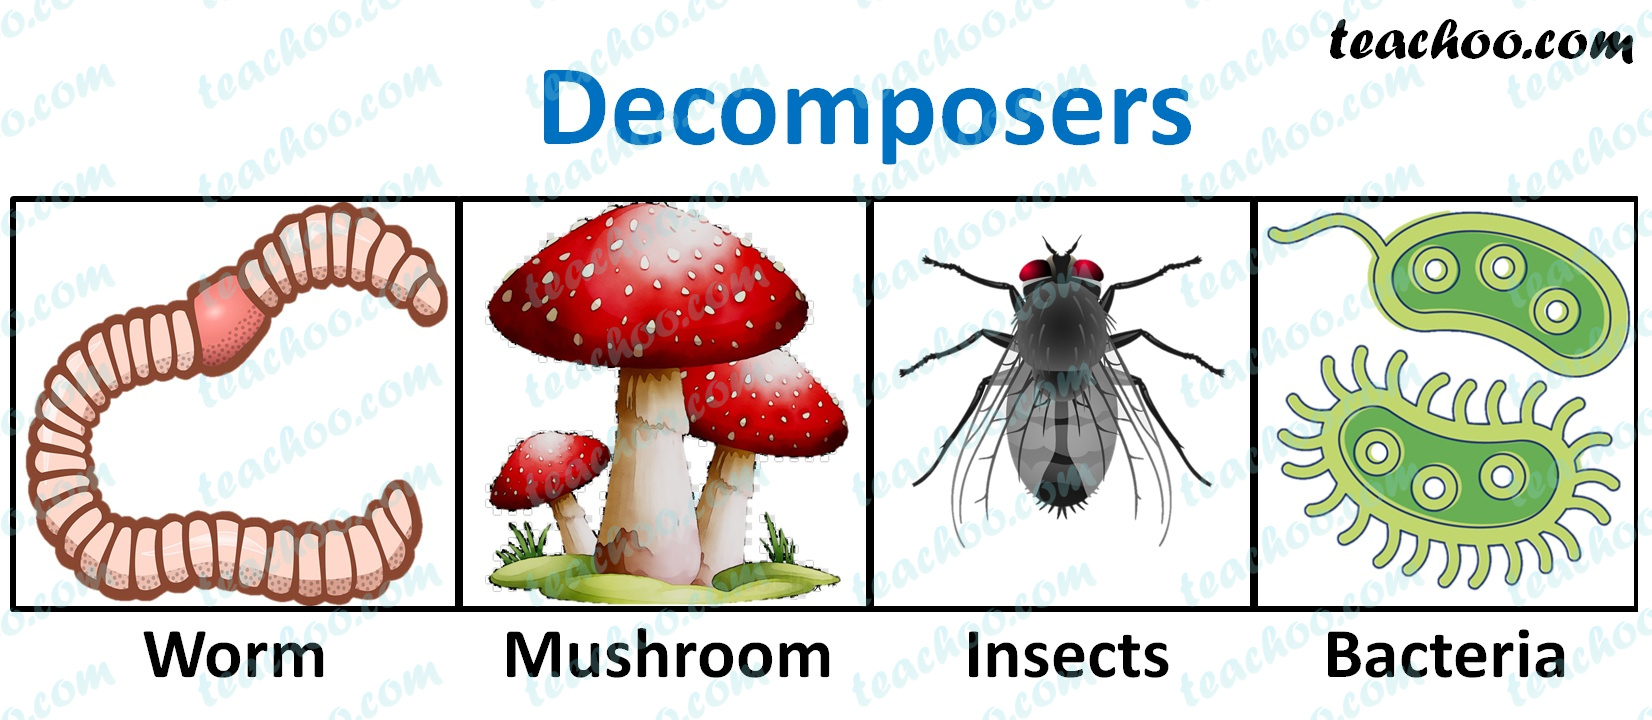 decomposers---teachoo.jpg